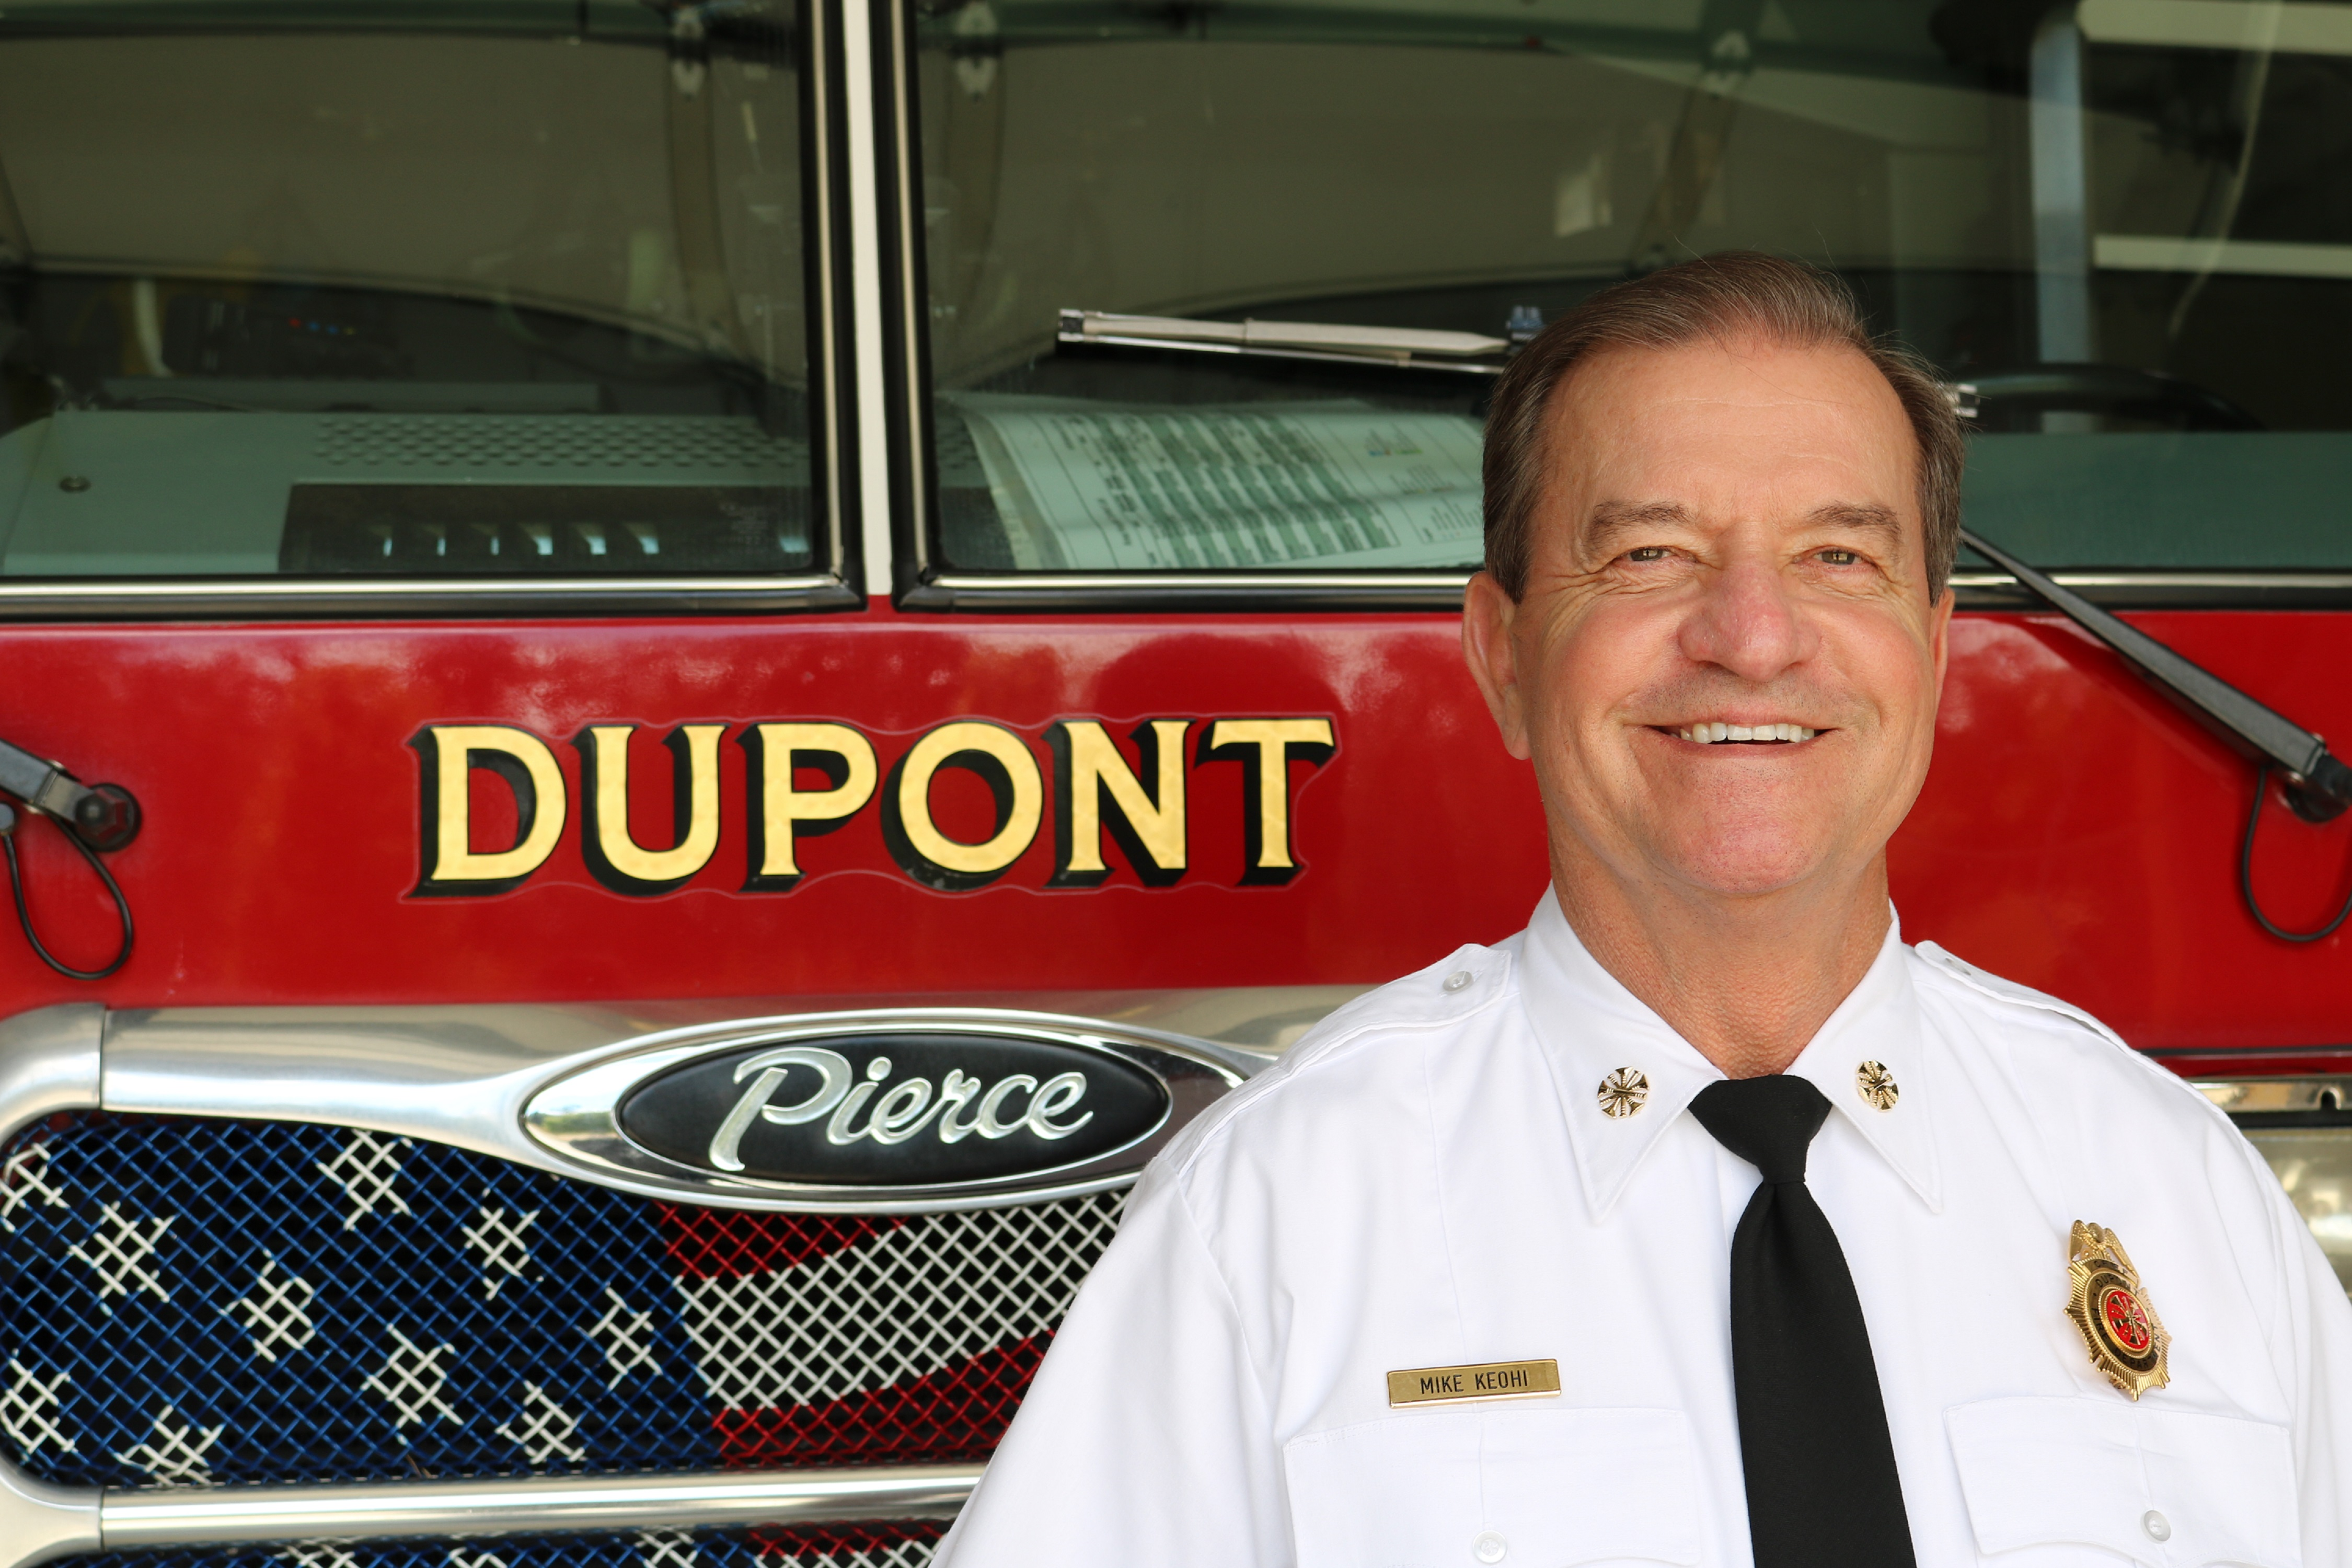 Fire Chief Photo web.jpg